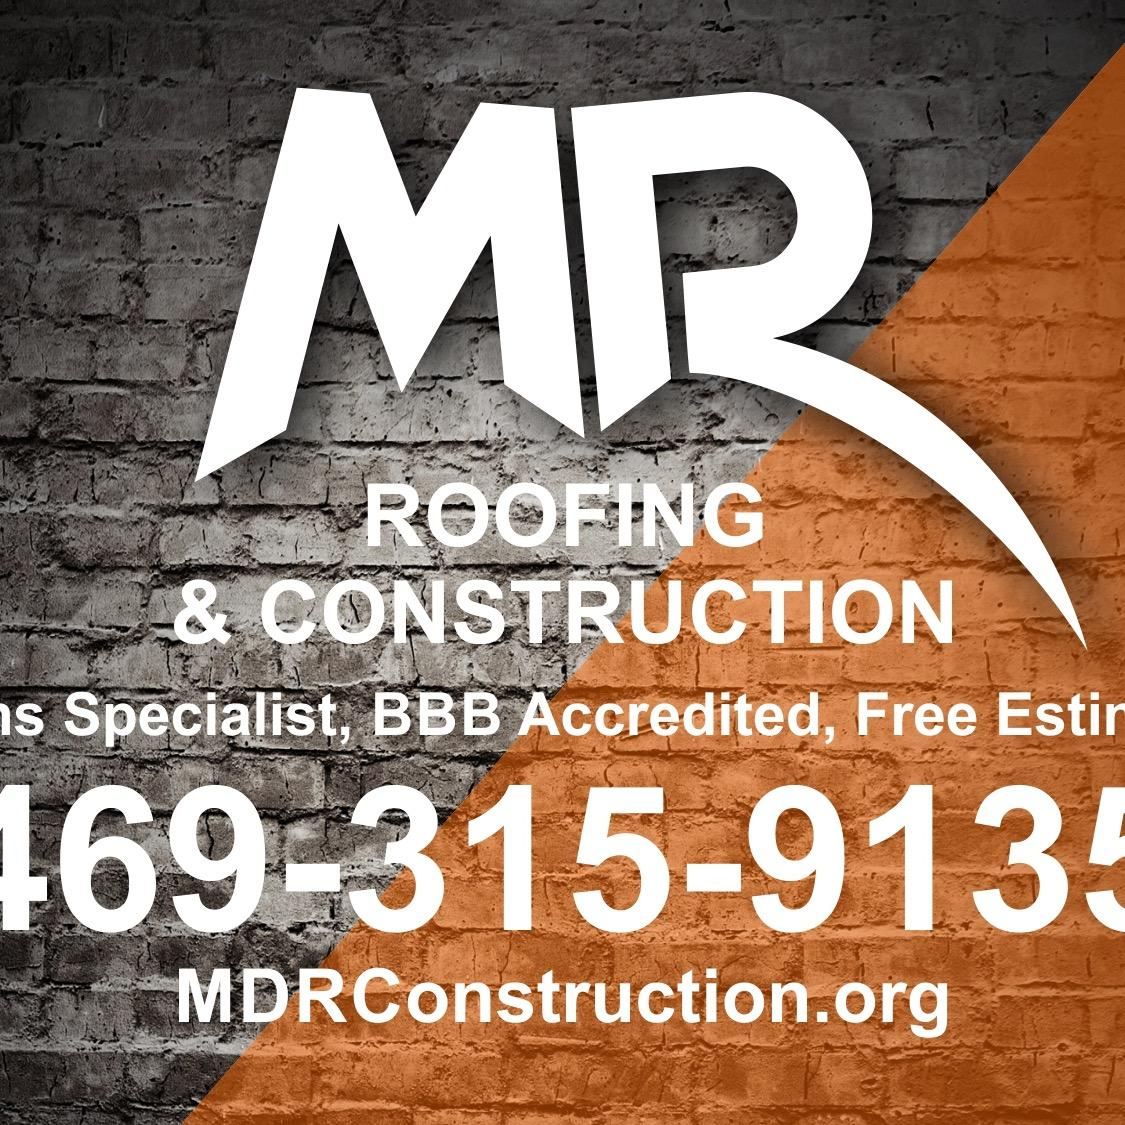 MDR Roofing and Construction, Inc.